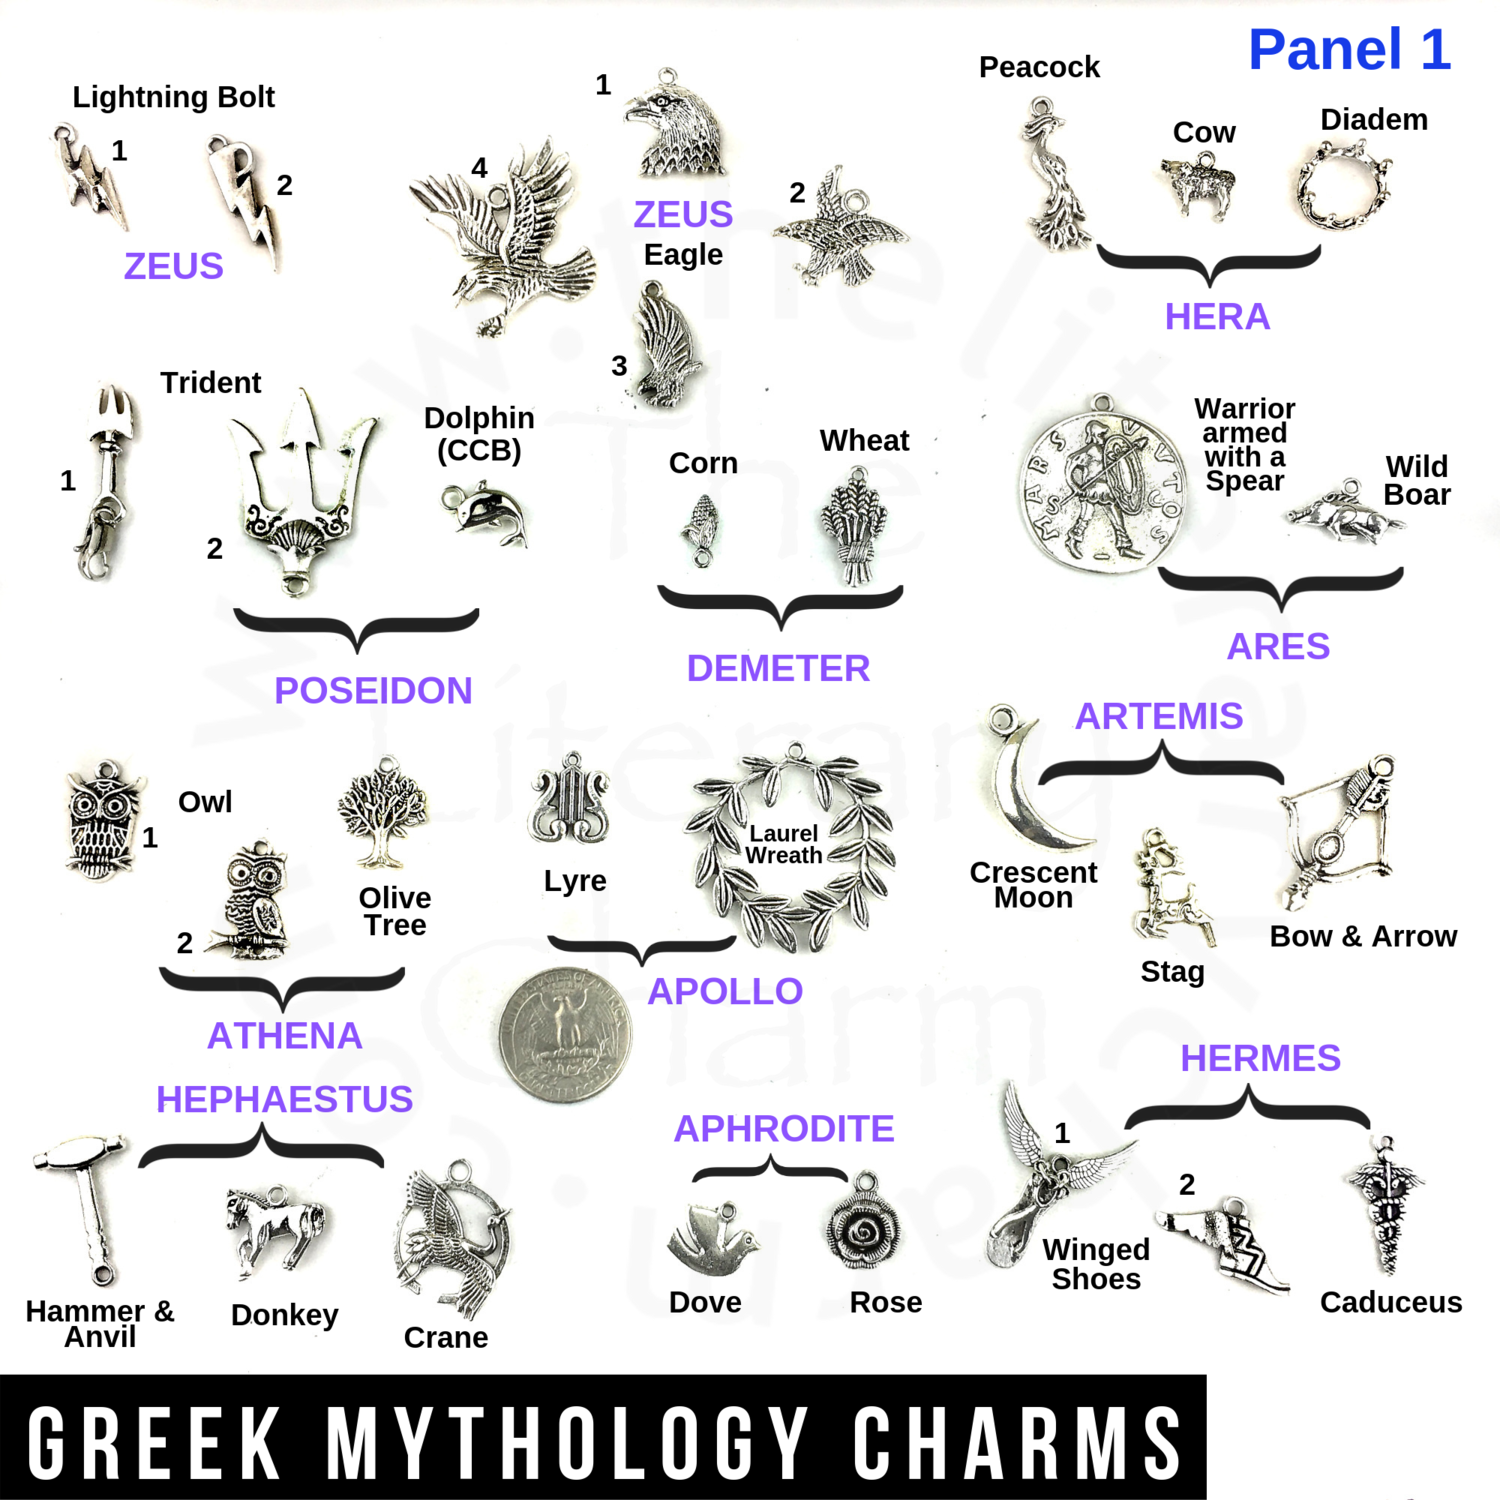 Greek Mythology Charms, Greek Gods Goddesses Symbols ...